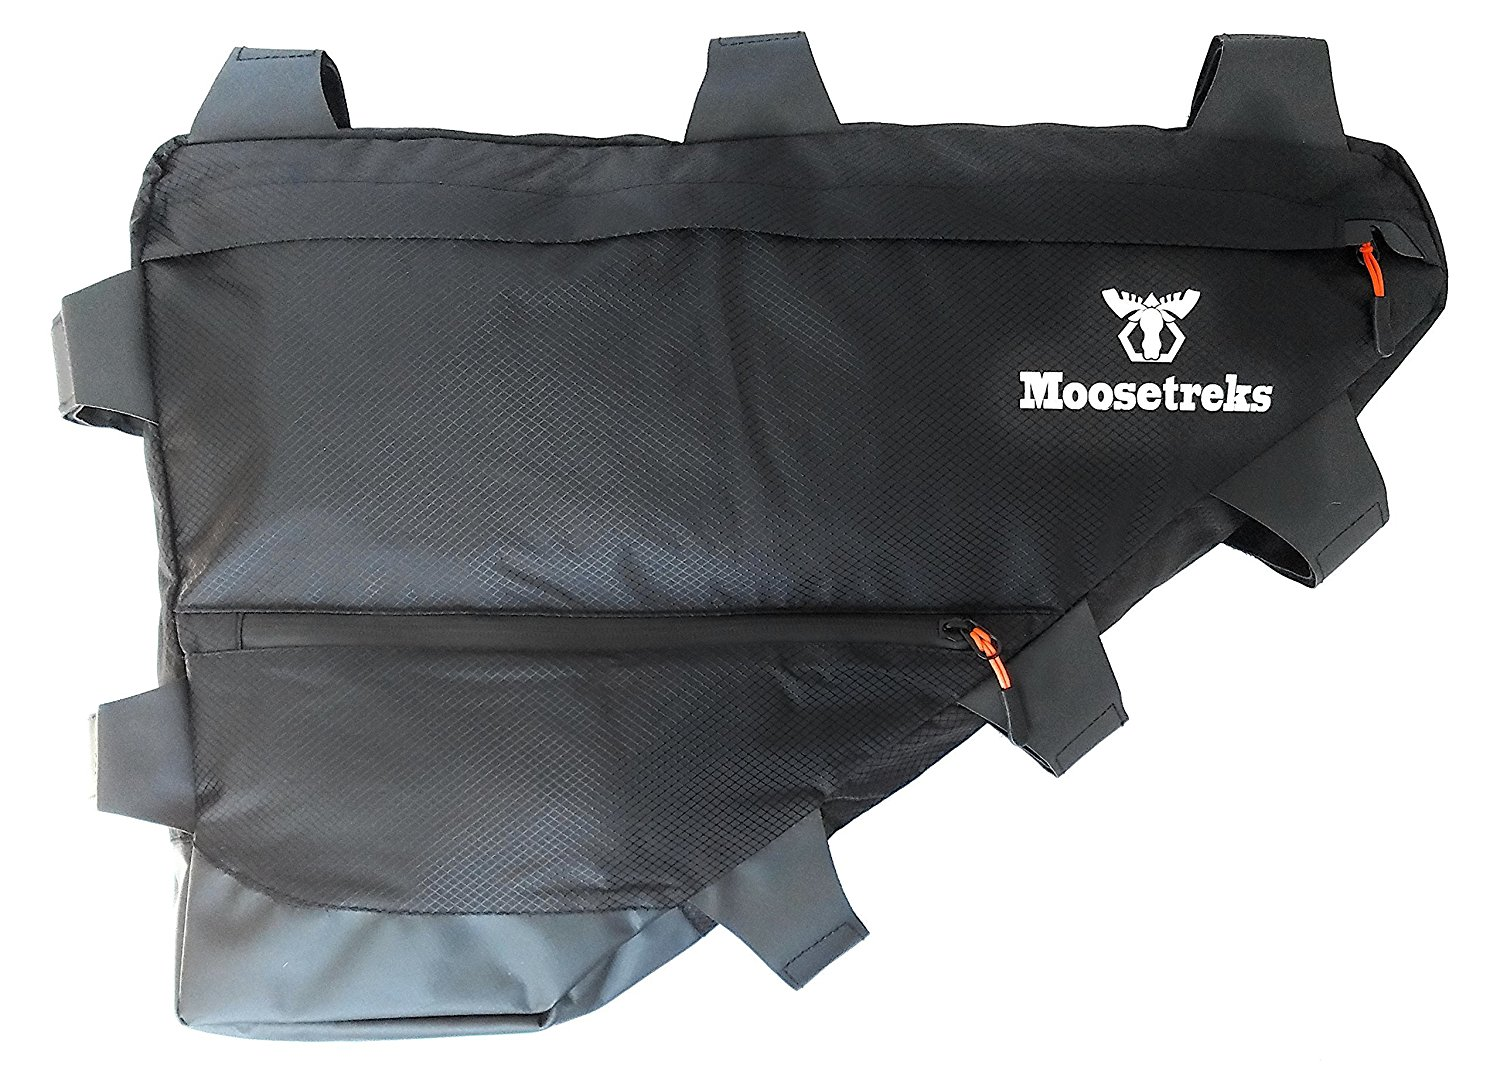 Moosetreks Road/Touring Bike Full Frame Bag | Bikepacking, Bicycle Touring, Commuting Full Frame Pack | Small (6.5L), Medium (12L), Large (14L) | Extremely Water Resistant